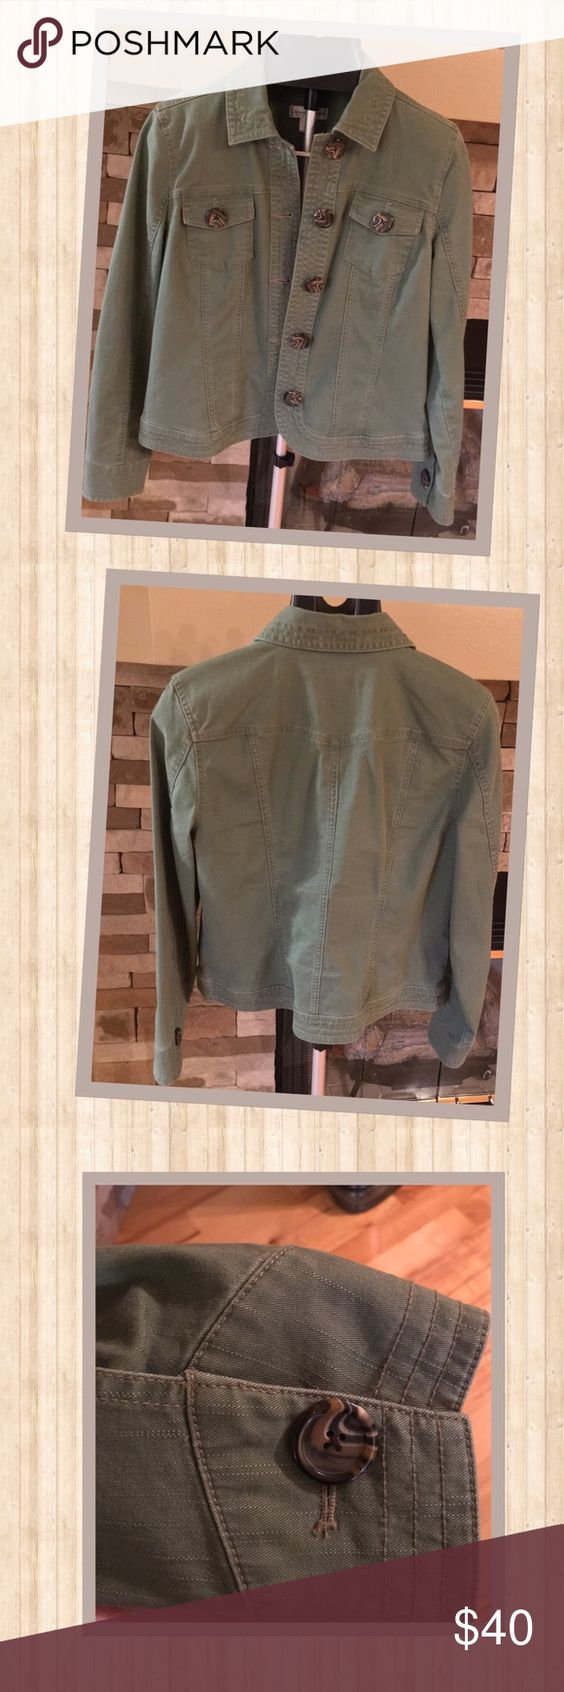 Perfect Fall Green Utility Jacket Christopher and Banks perfect fall green button up utility jacket.  Has two chest pockets.  97% Cotton and 3% Spandex. A must have for your fall wardrobe. Christopher & Banks Jackets & Coats Utility Jackets